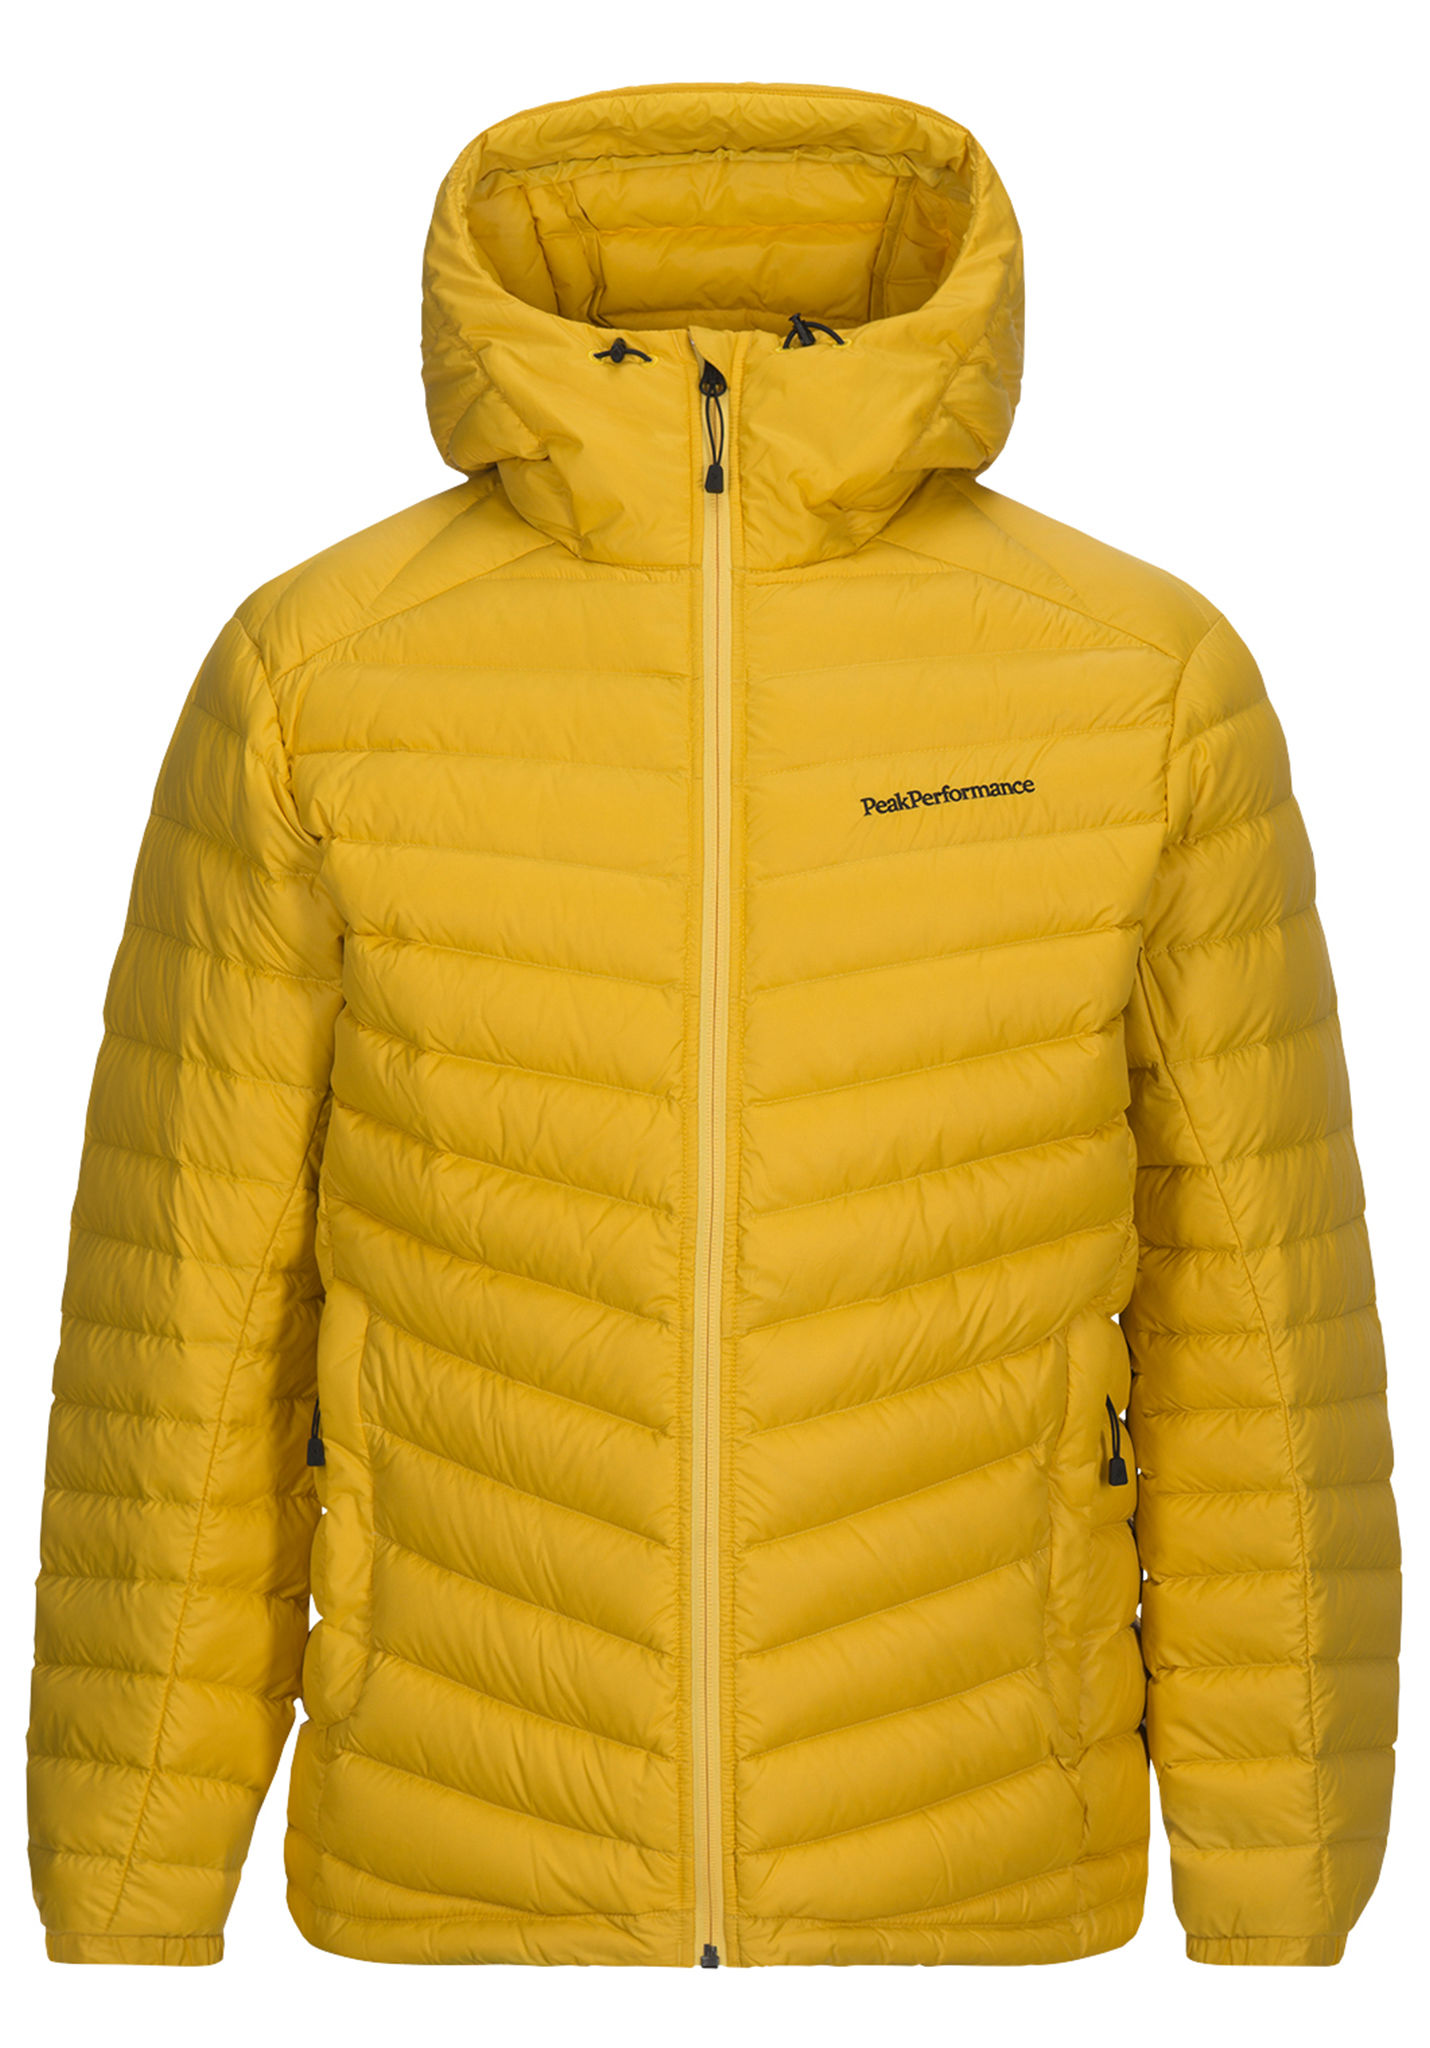 quality design 2f861 ef4a4 PEAK PERFORMANCE Frost Down Hood - Outdoor Jacket for Men - Yellow